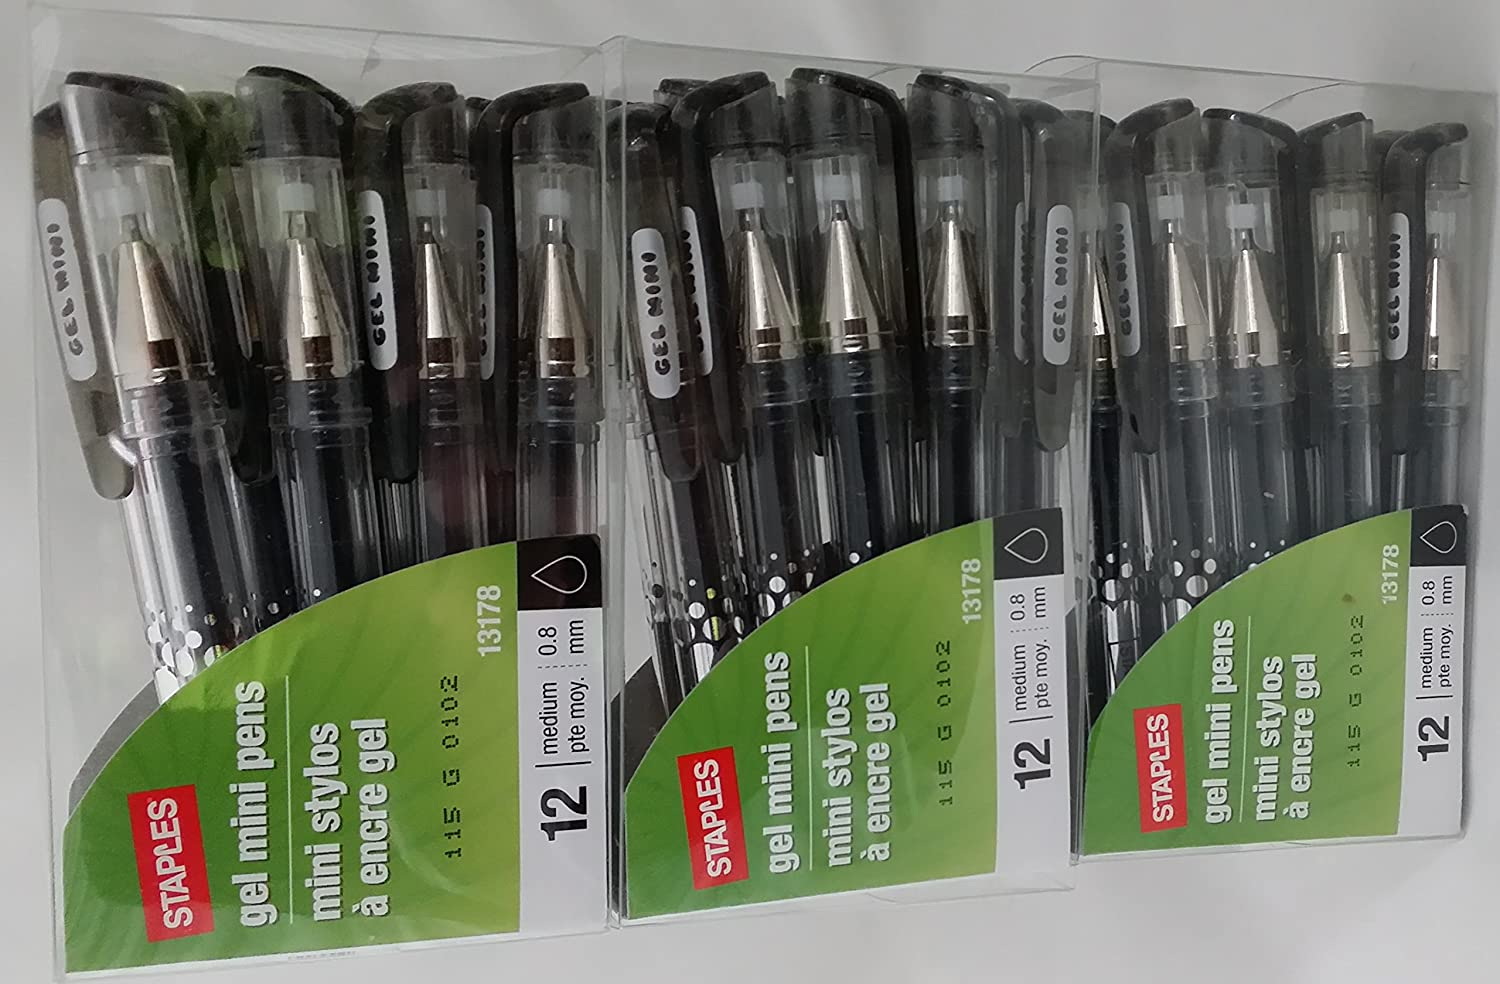 Staples Mini Gel Stick Pocket Pens Black Ink(3 Packs!) - 36 Medium Point  0.8mm: Amazon.co.uk: Office Products